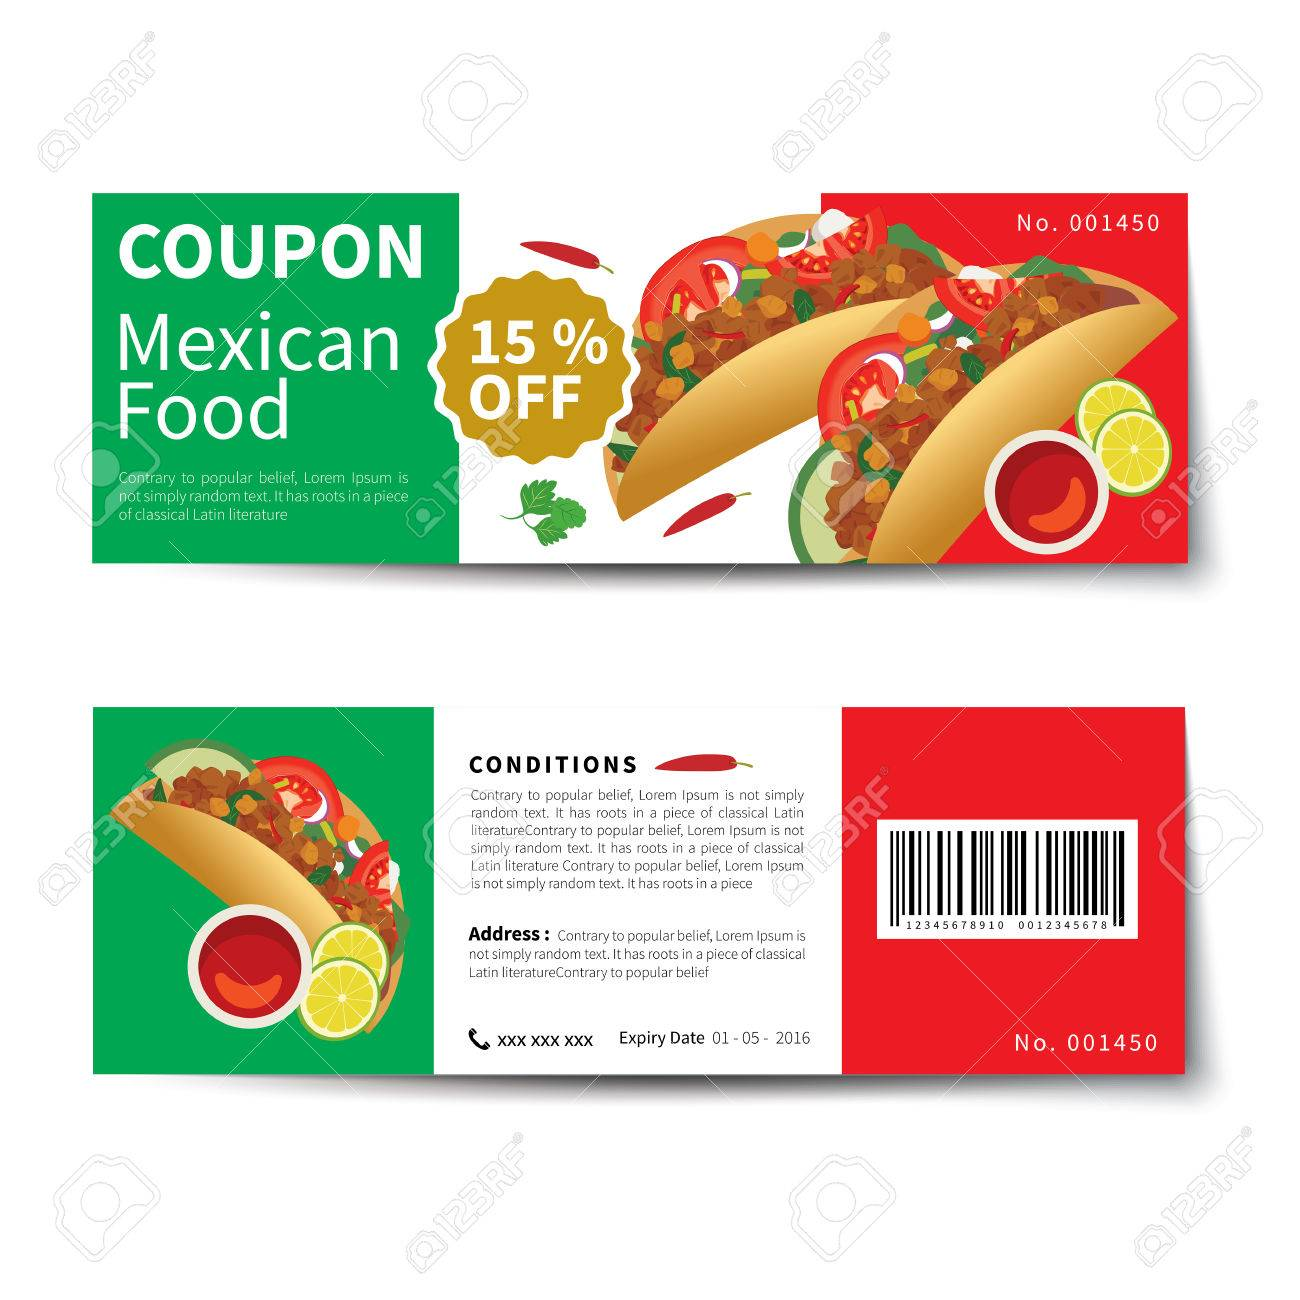 Mexican Food Coupon Discount Template Flat Design Royalty Free